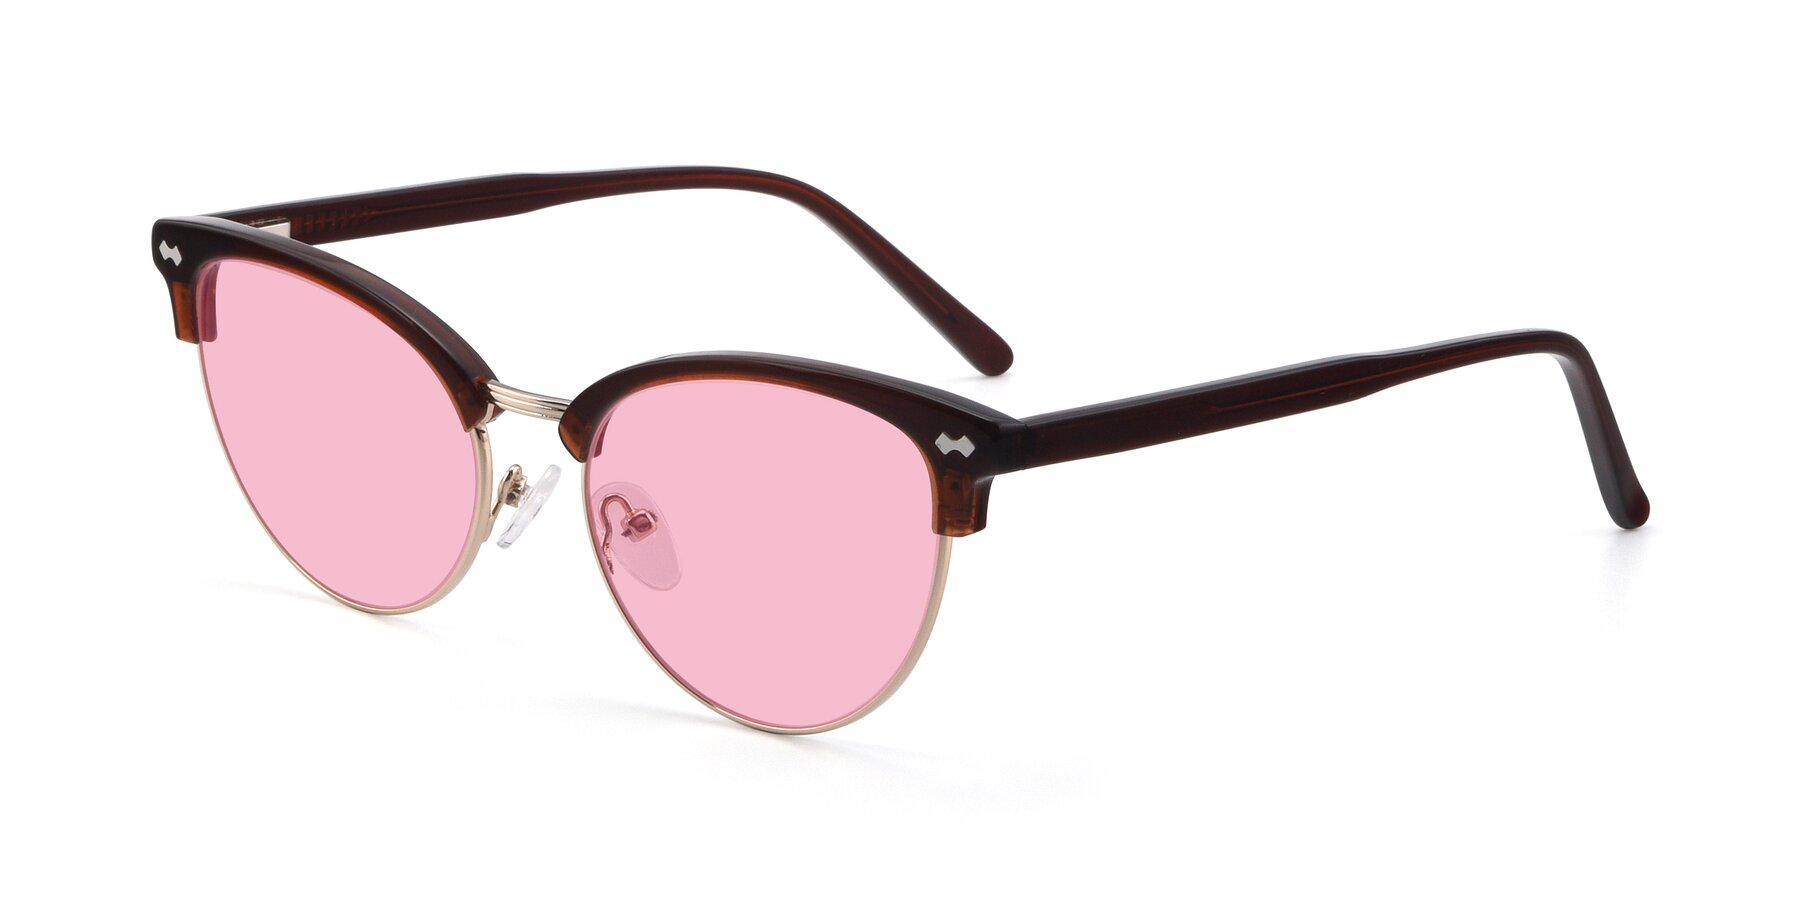 Angle of 17461 in Tortoise-Black with Medium Pink Tinted Lenses